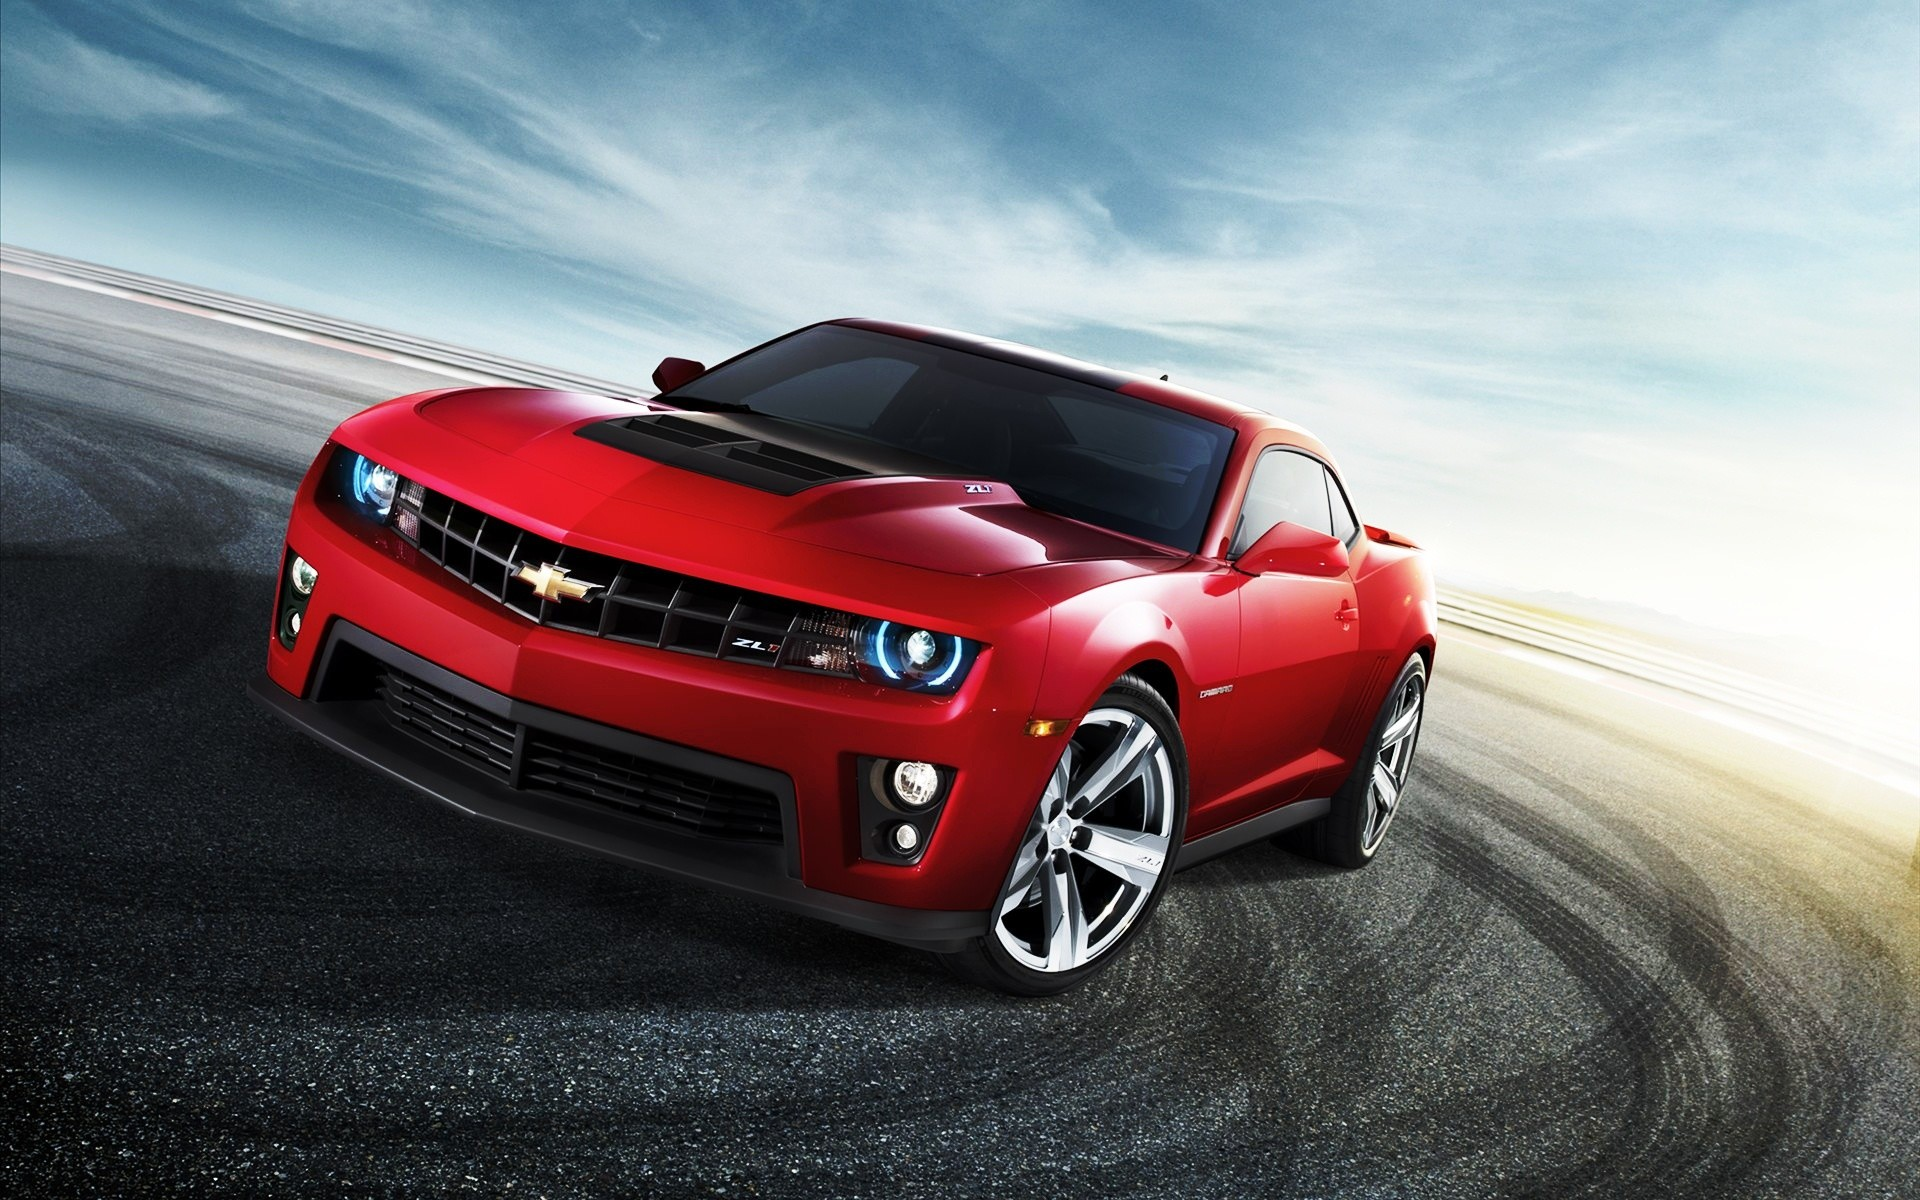 2012 Chevrolet Camaro Wallpapers | HD Wallpapers